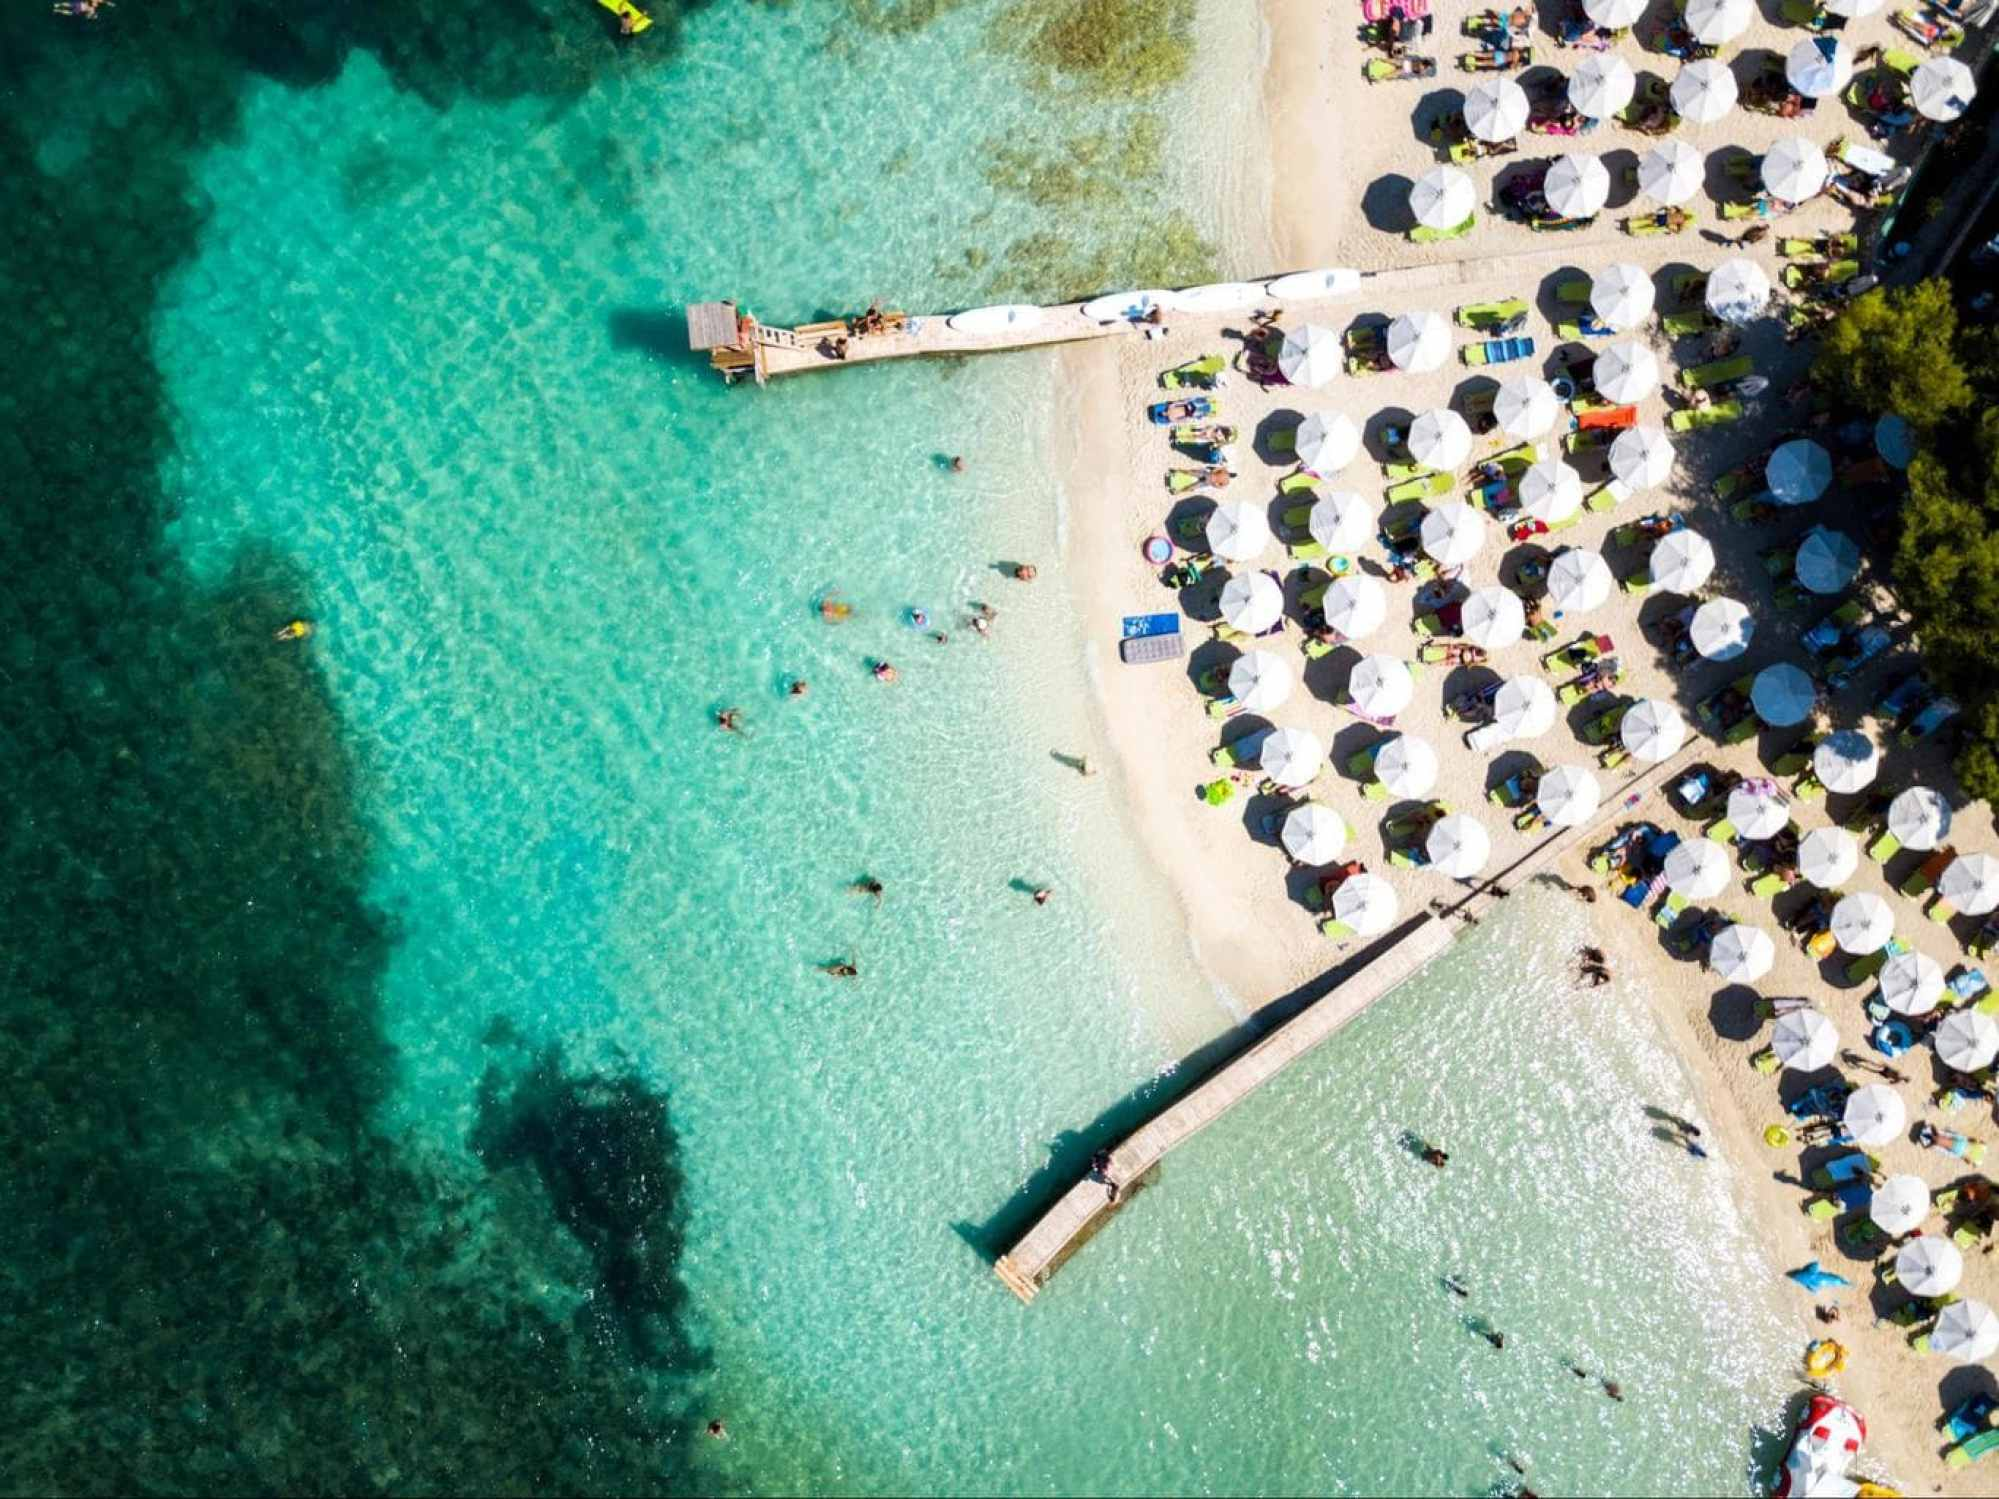 A close-up of the beaches in Ksamil